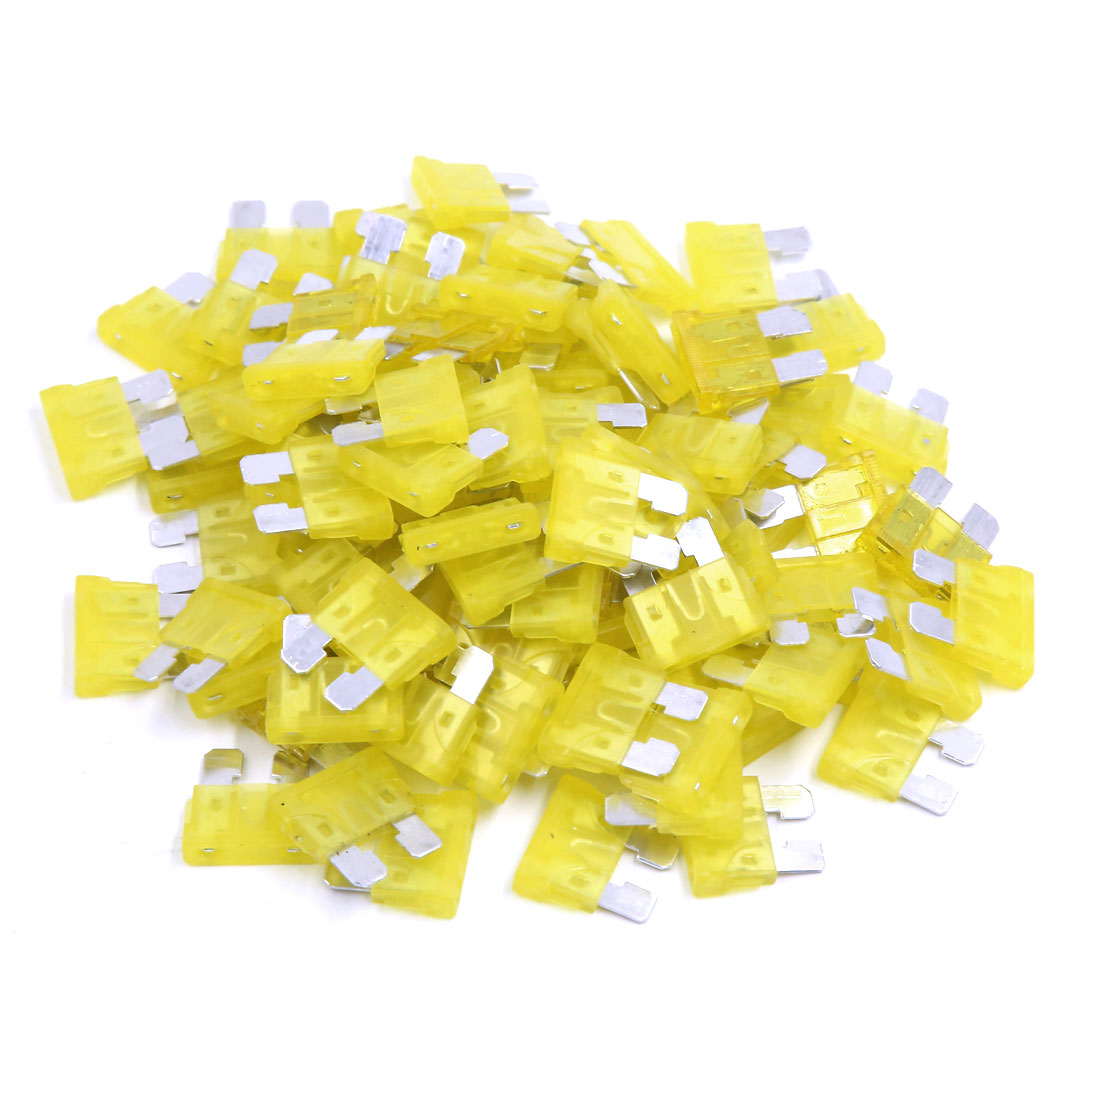 20A Motorcycle Vehicle Metal Yellow Blade Fuse 100 Pcs